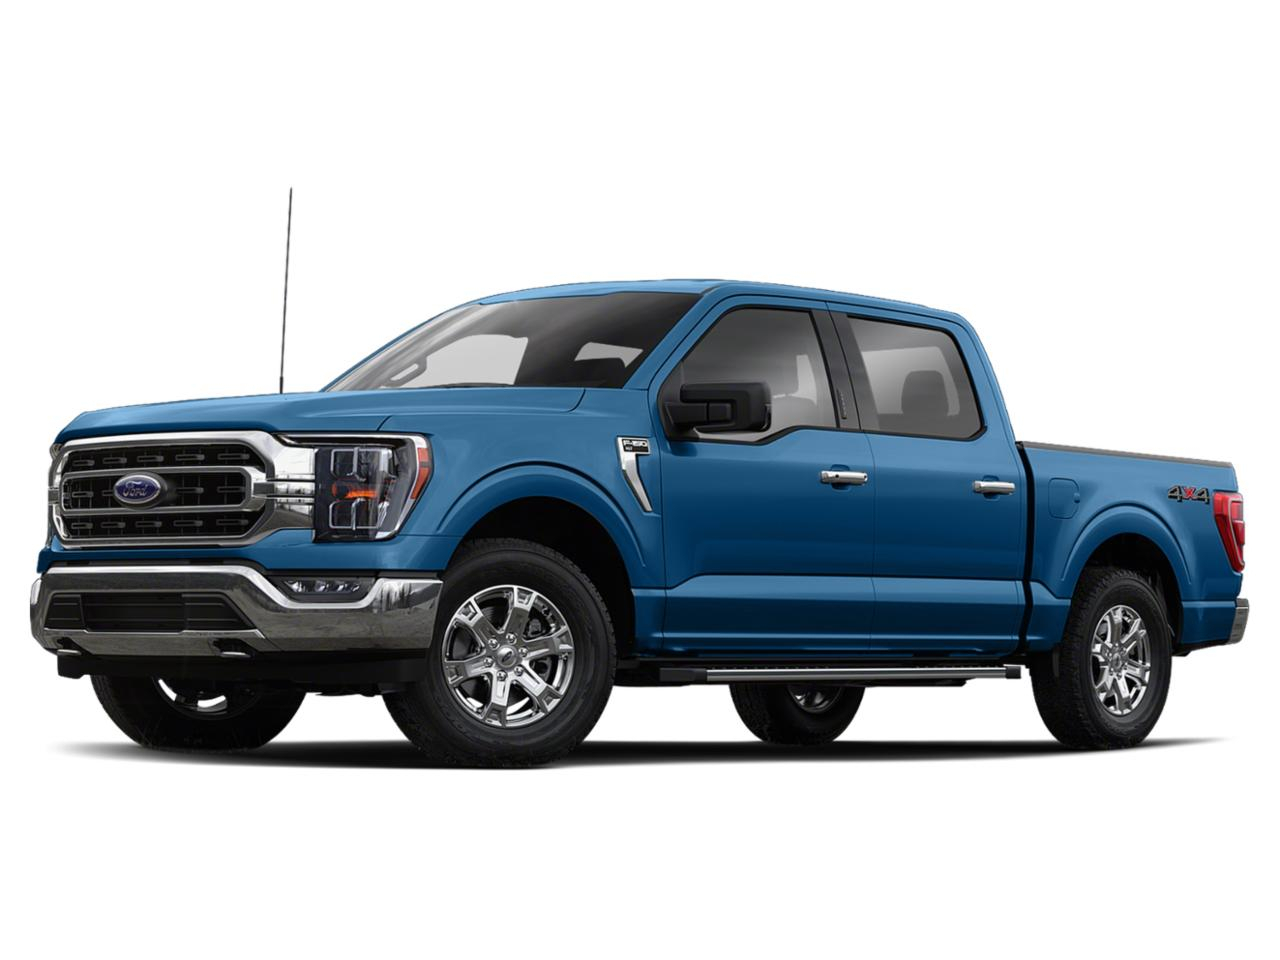 Antimatter Blue Metallic 2021 Ford F-150 For Sale At Ciocca in Pa Rut 2021